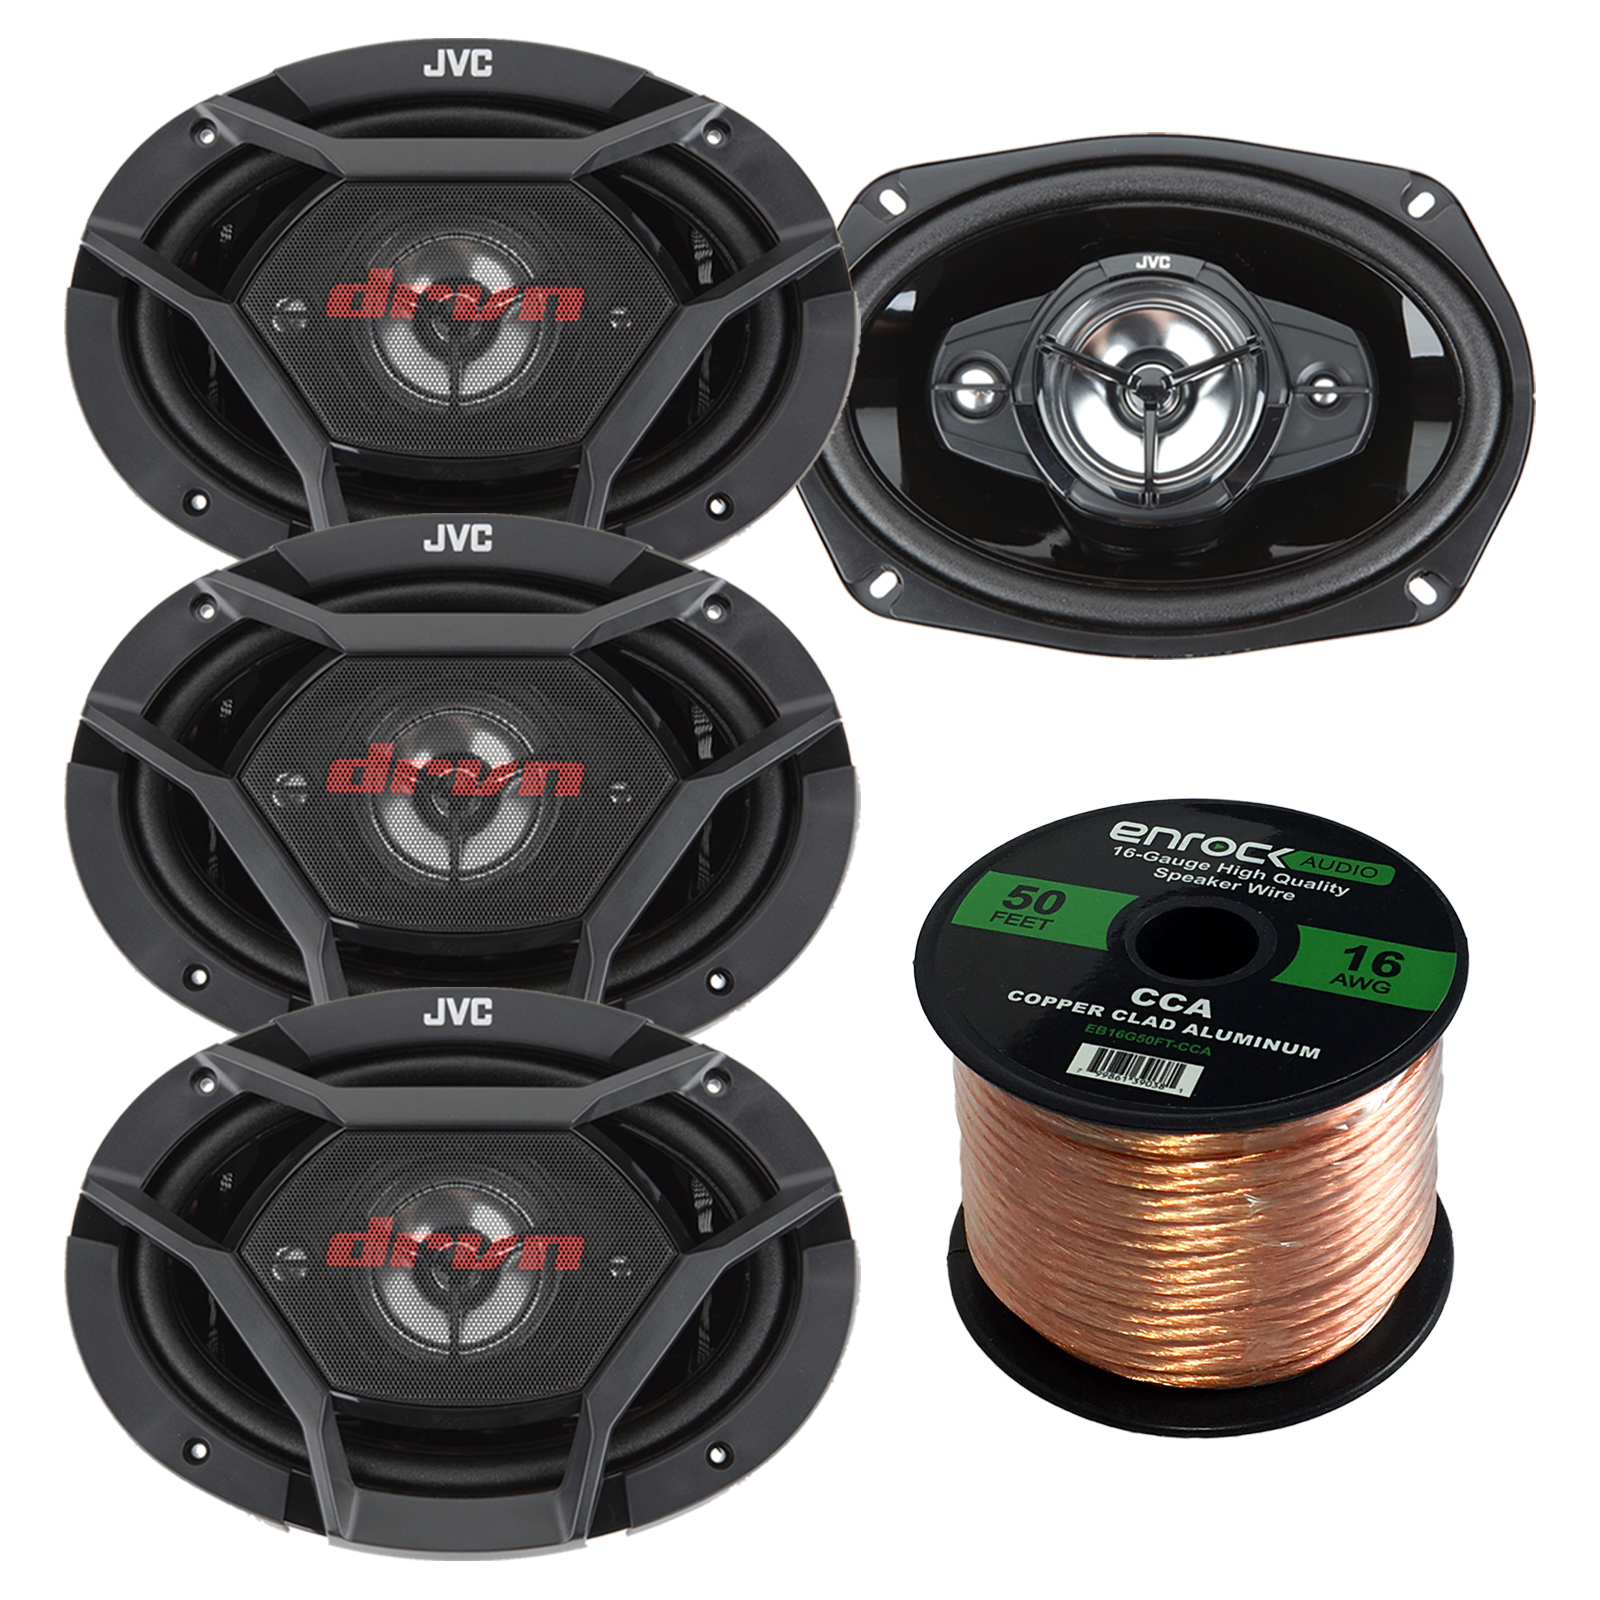 "Car Speaker Bundle Combo: 2 Pairs of JVC CS-DR6940 6x9"" Inch 4-Way 1100 Watt Audio Coaxial Upgrade Speakers + Enrock 50 Foot 16 Gauge Speaker Wire"